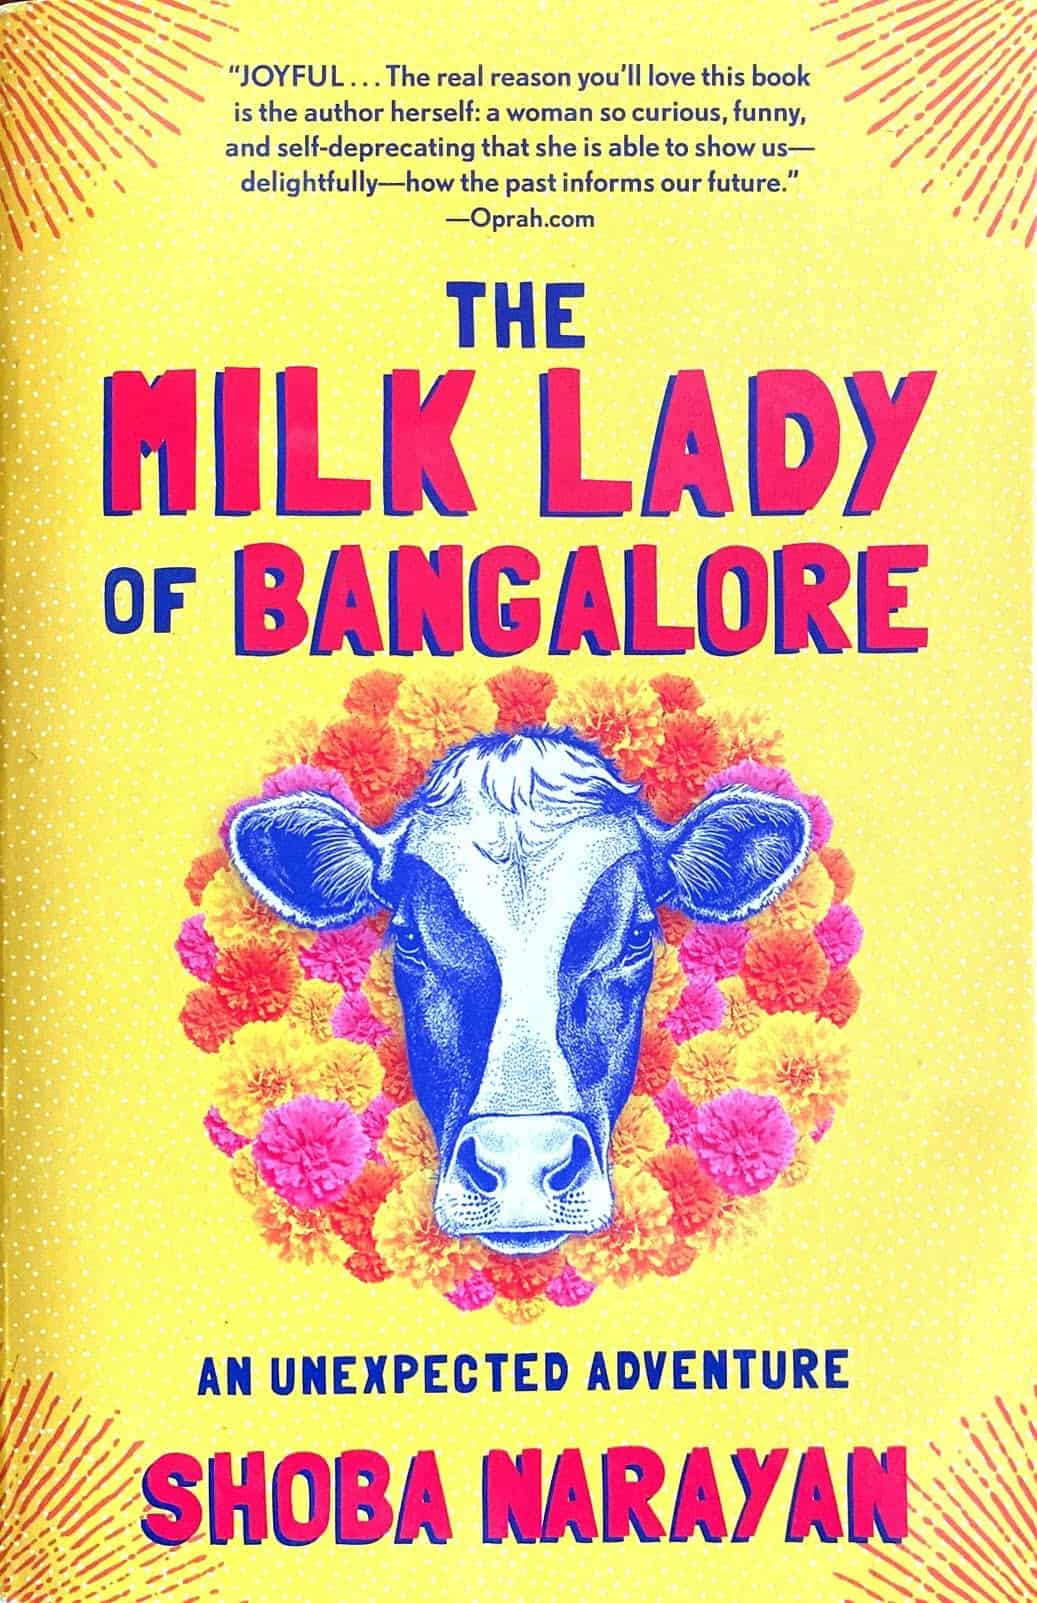 Paperback edition of The Milk Lady of Bangalore by Shoba Narayan